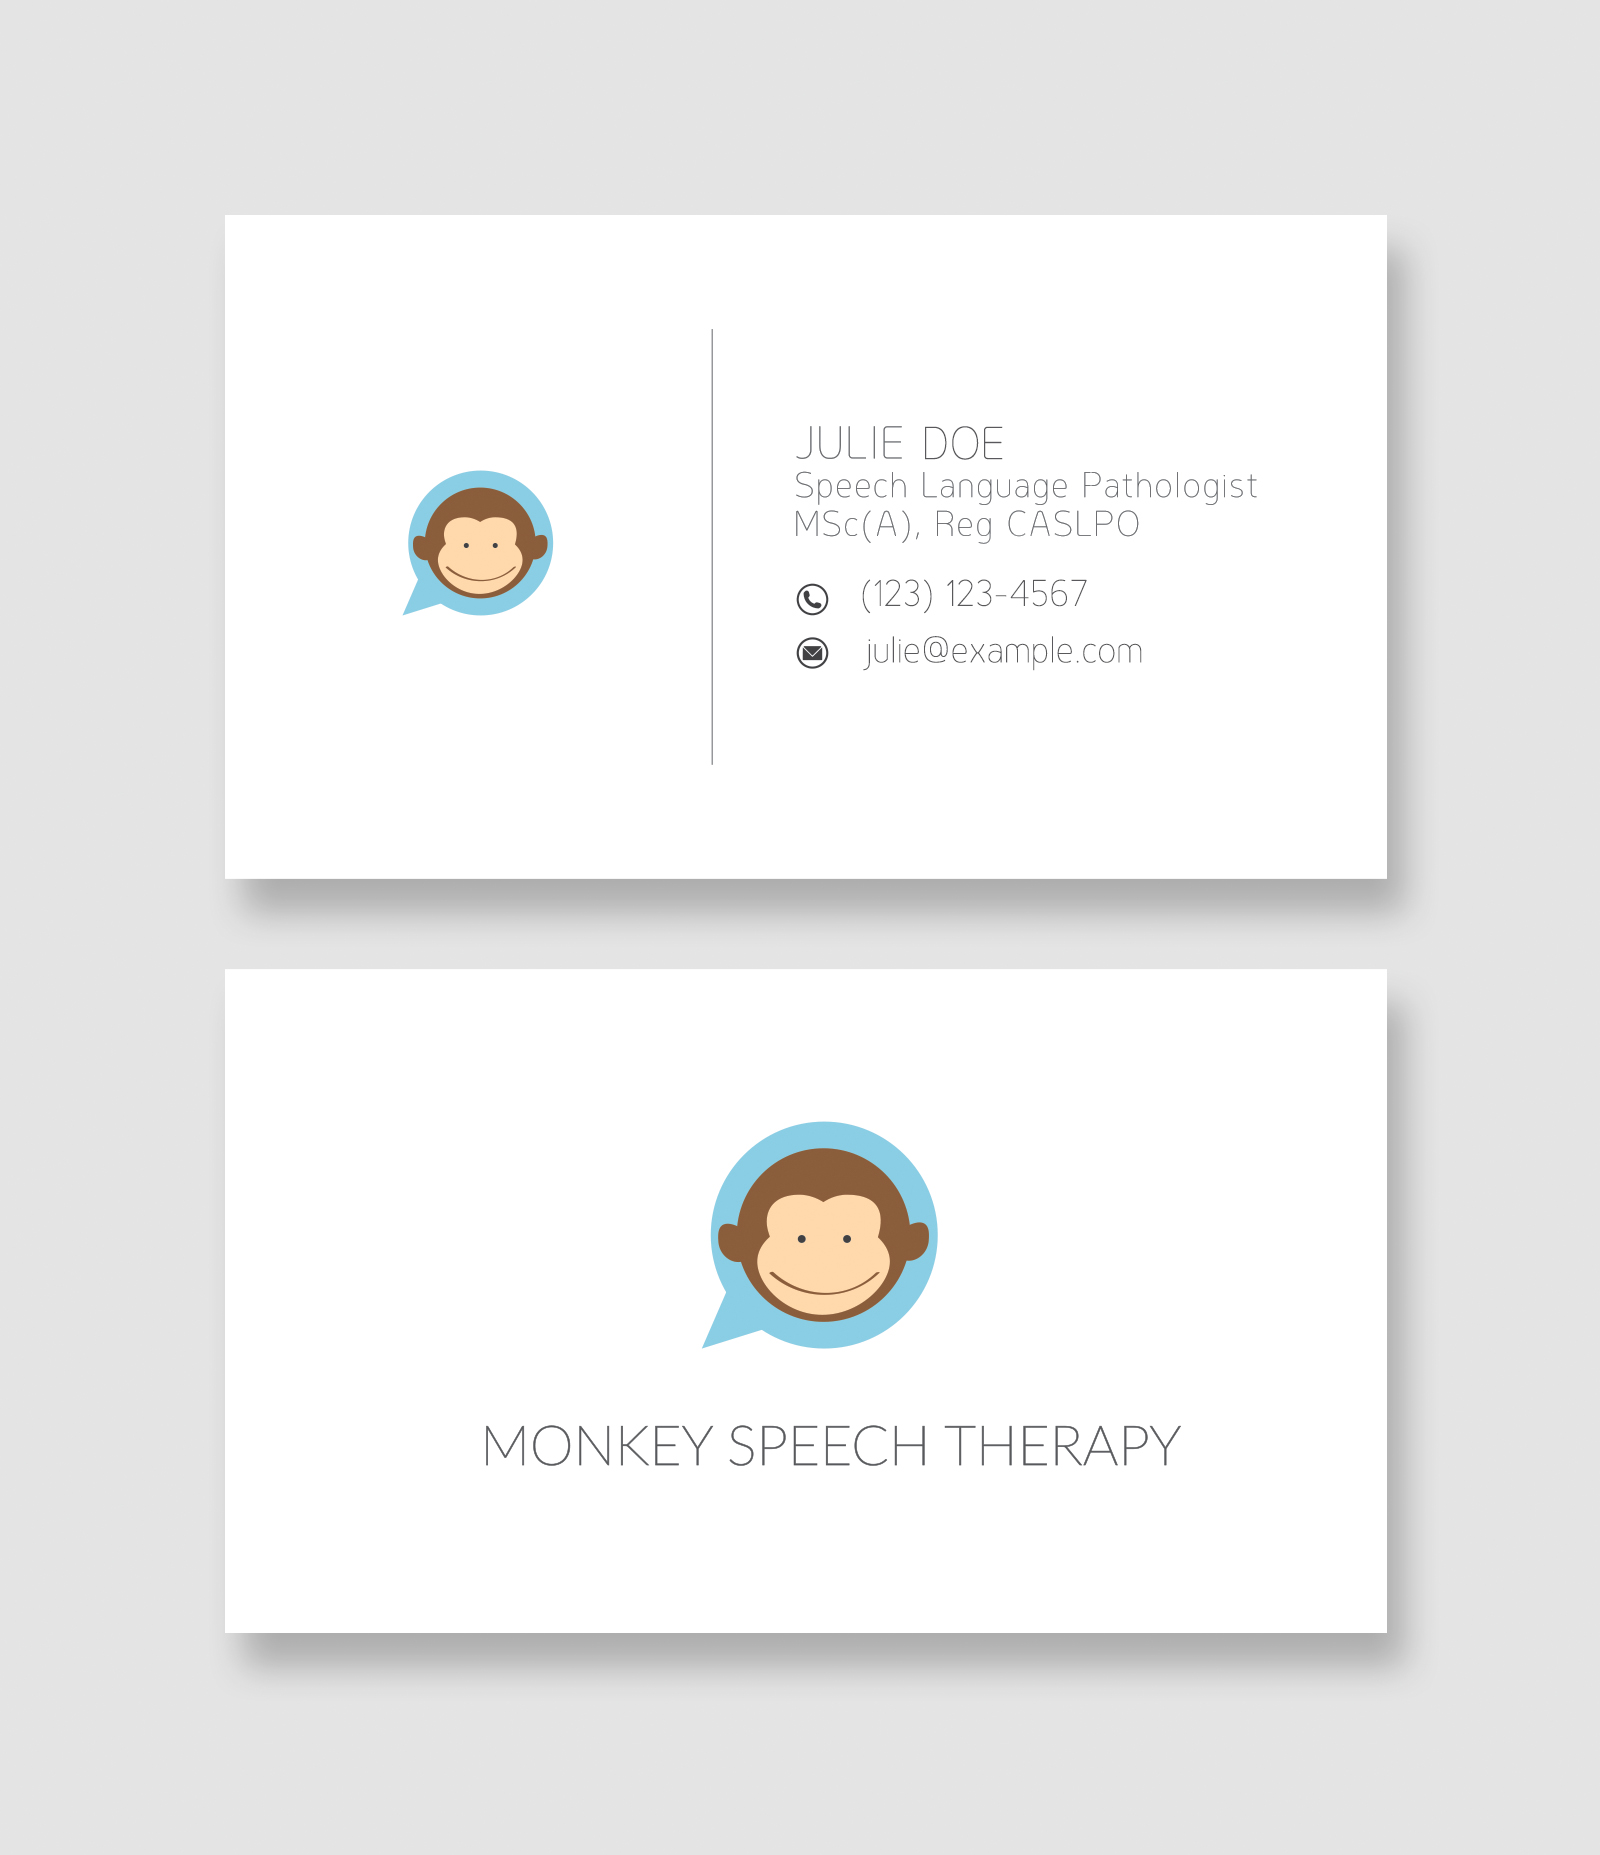 Monkey speech yuna wang yuna wang monkey speech monkey speech julie wanted a new logo and business card reheart Choice Image